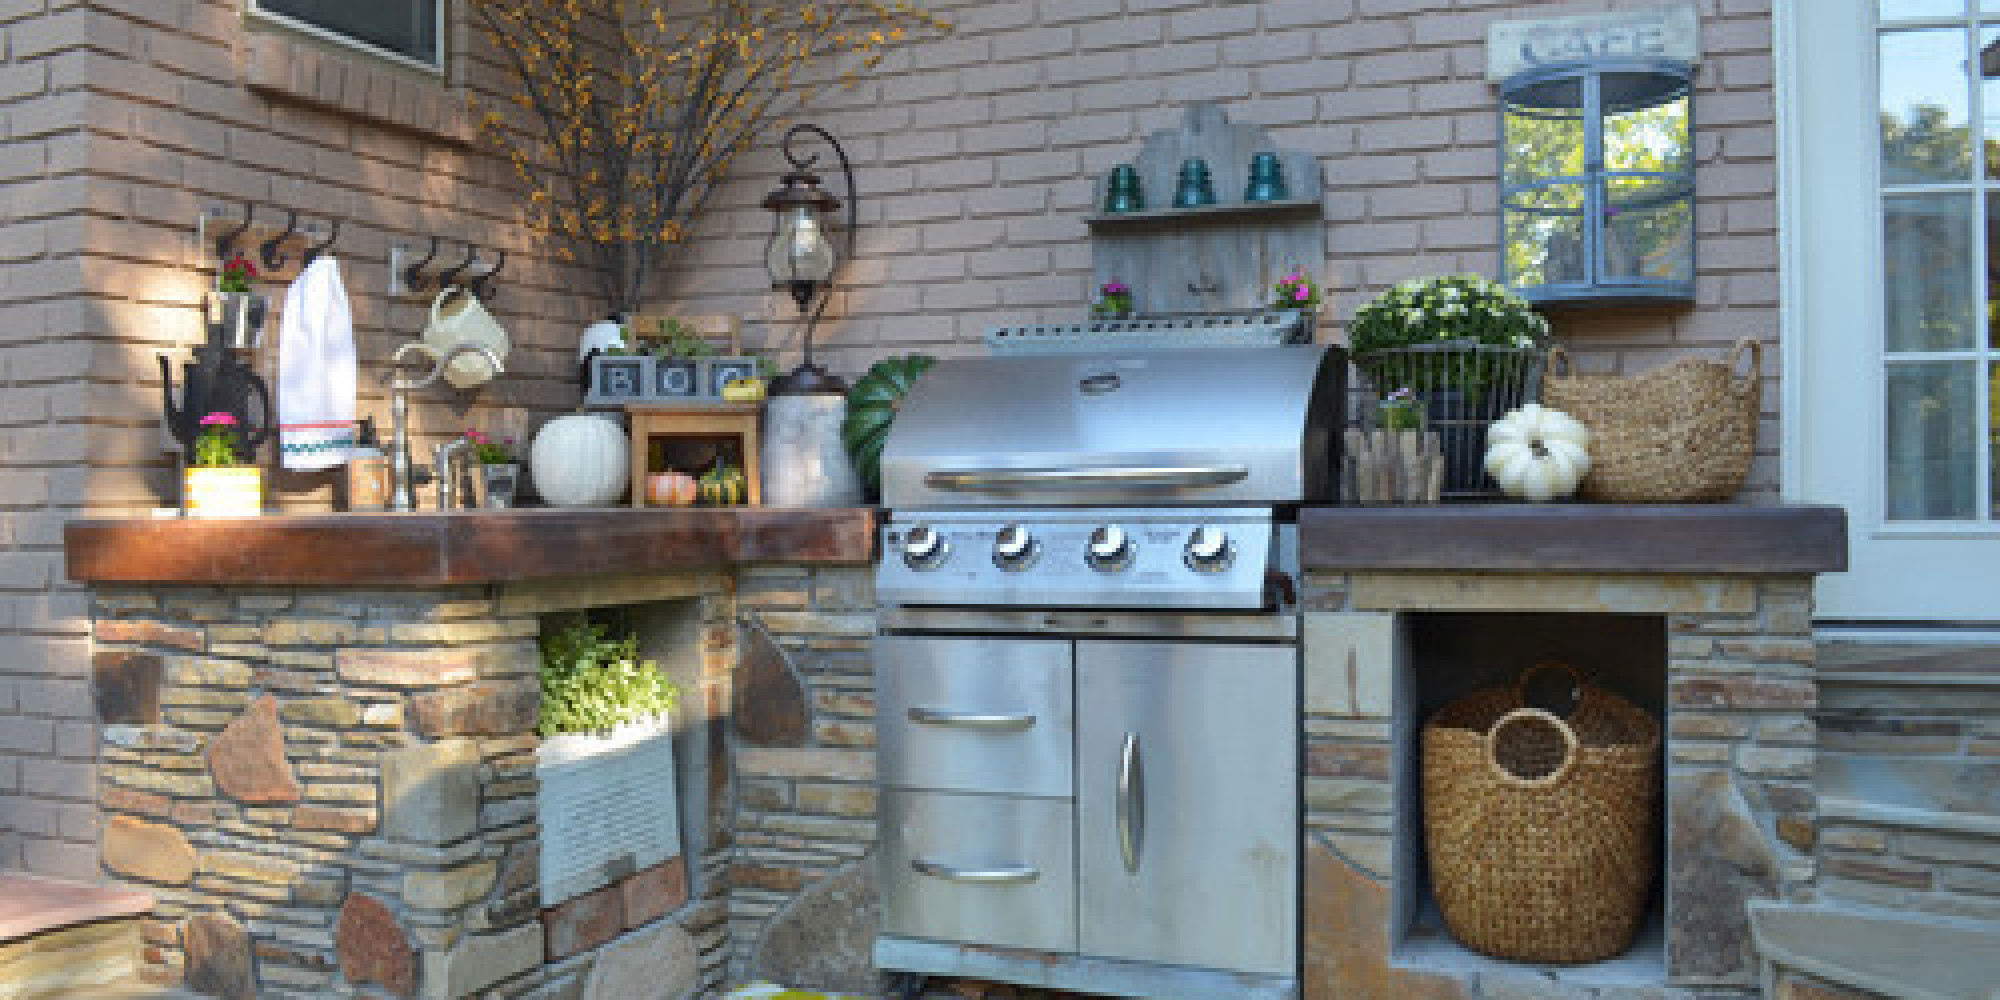 10 Ways To Set Up A Better Grill | HuffPost